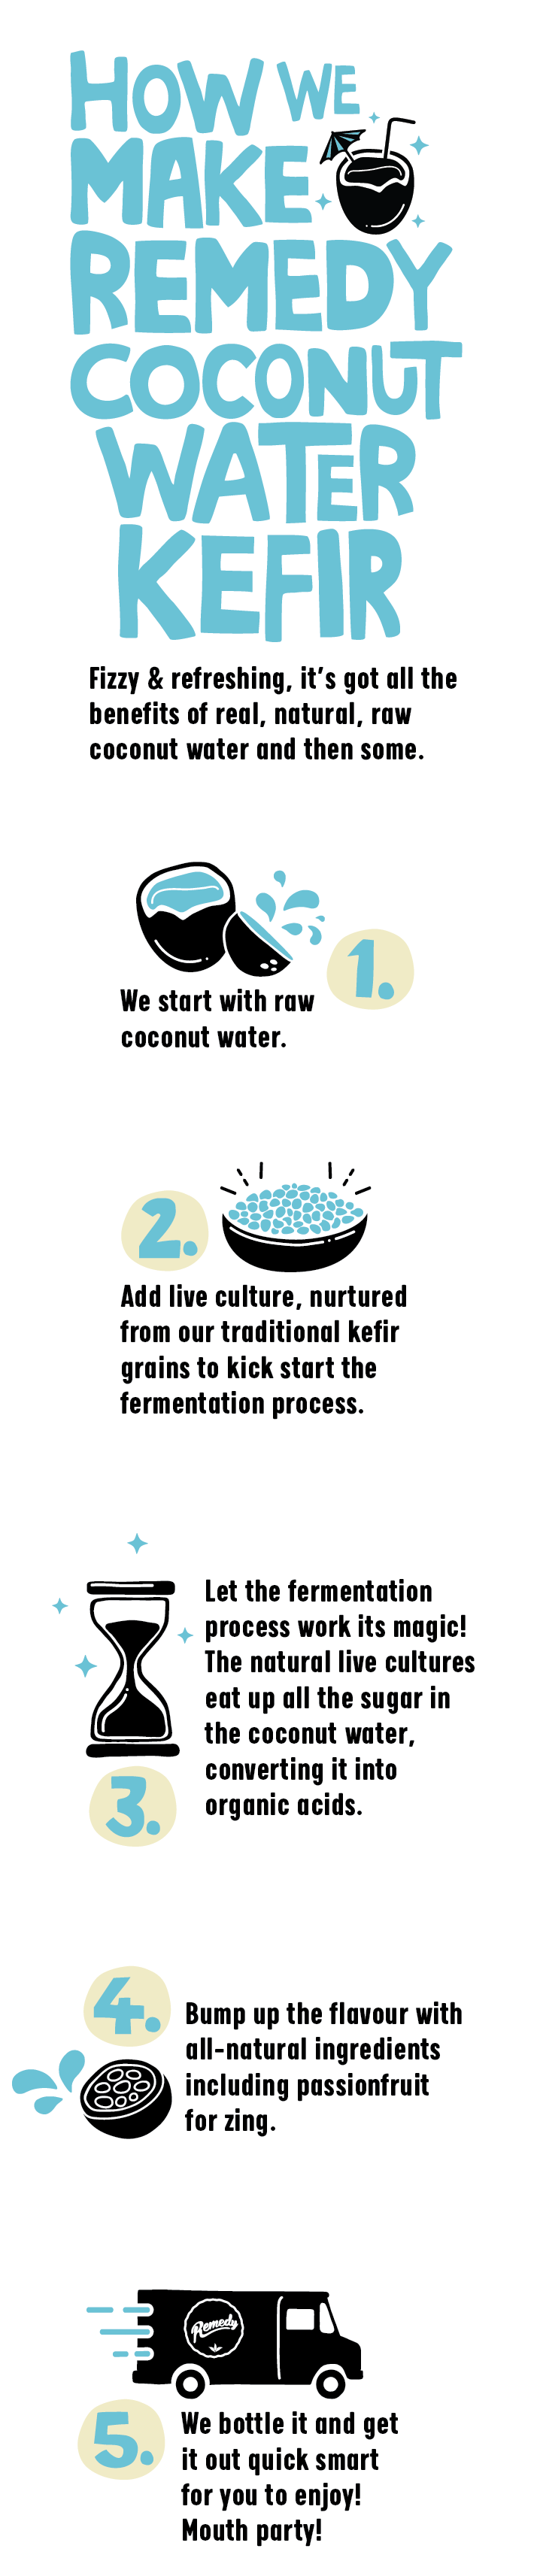 The Remedy Coconut Water Kefir Brewing Process